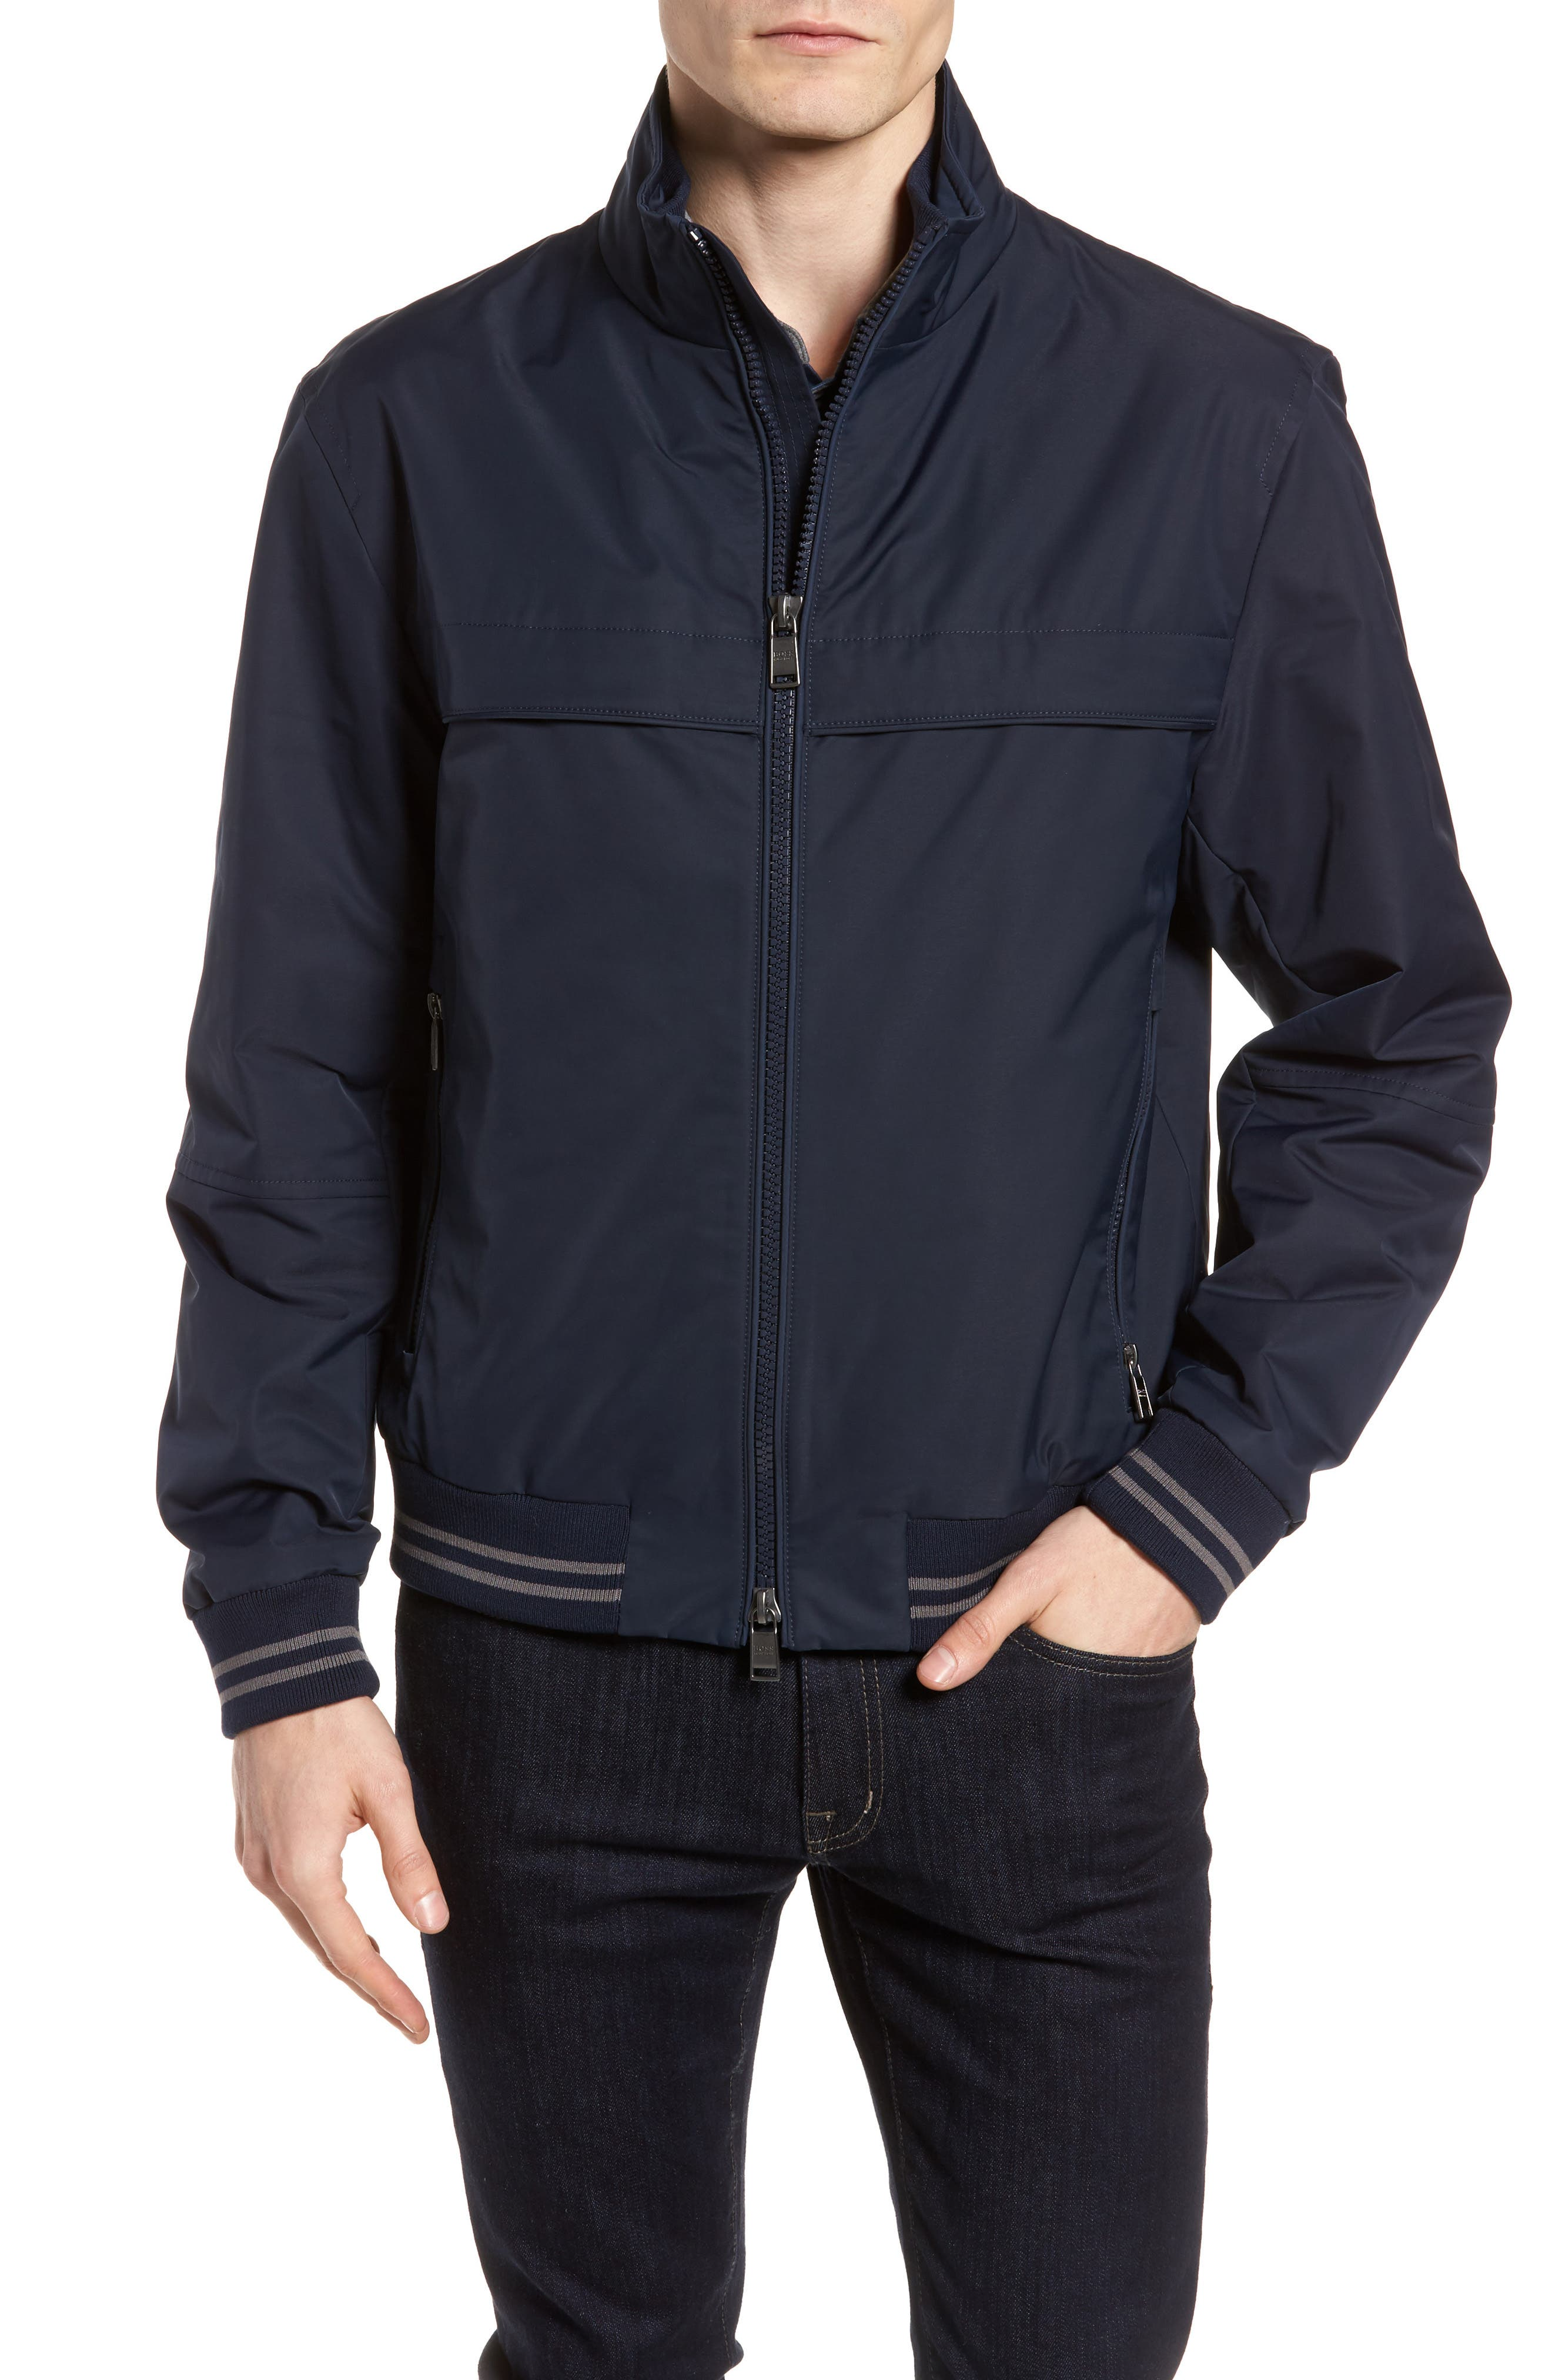 Cossito Regular Fit Bomber Jacket,                             Main thumbnail 1, color,                             410